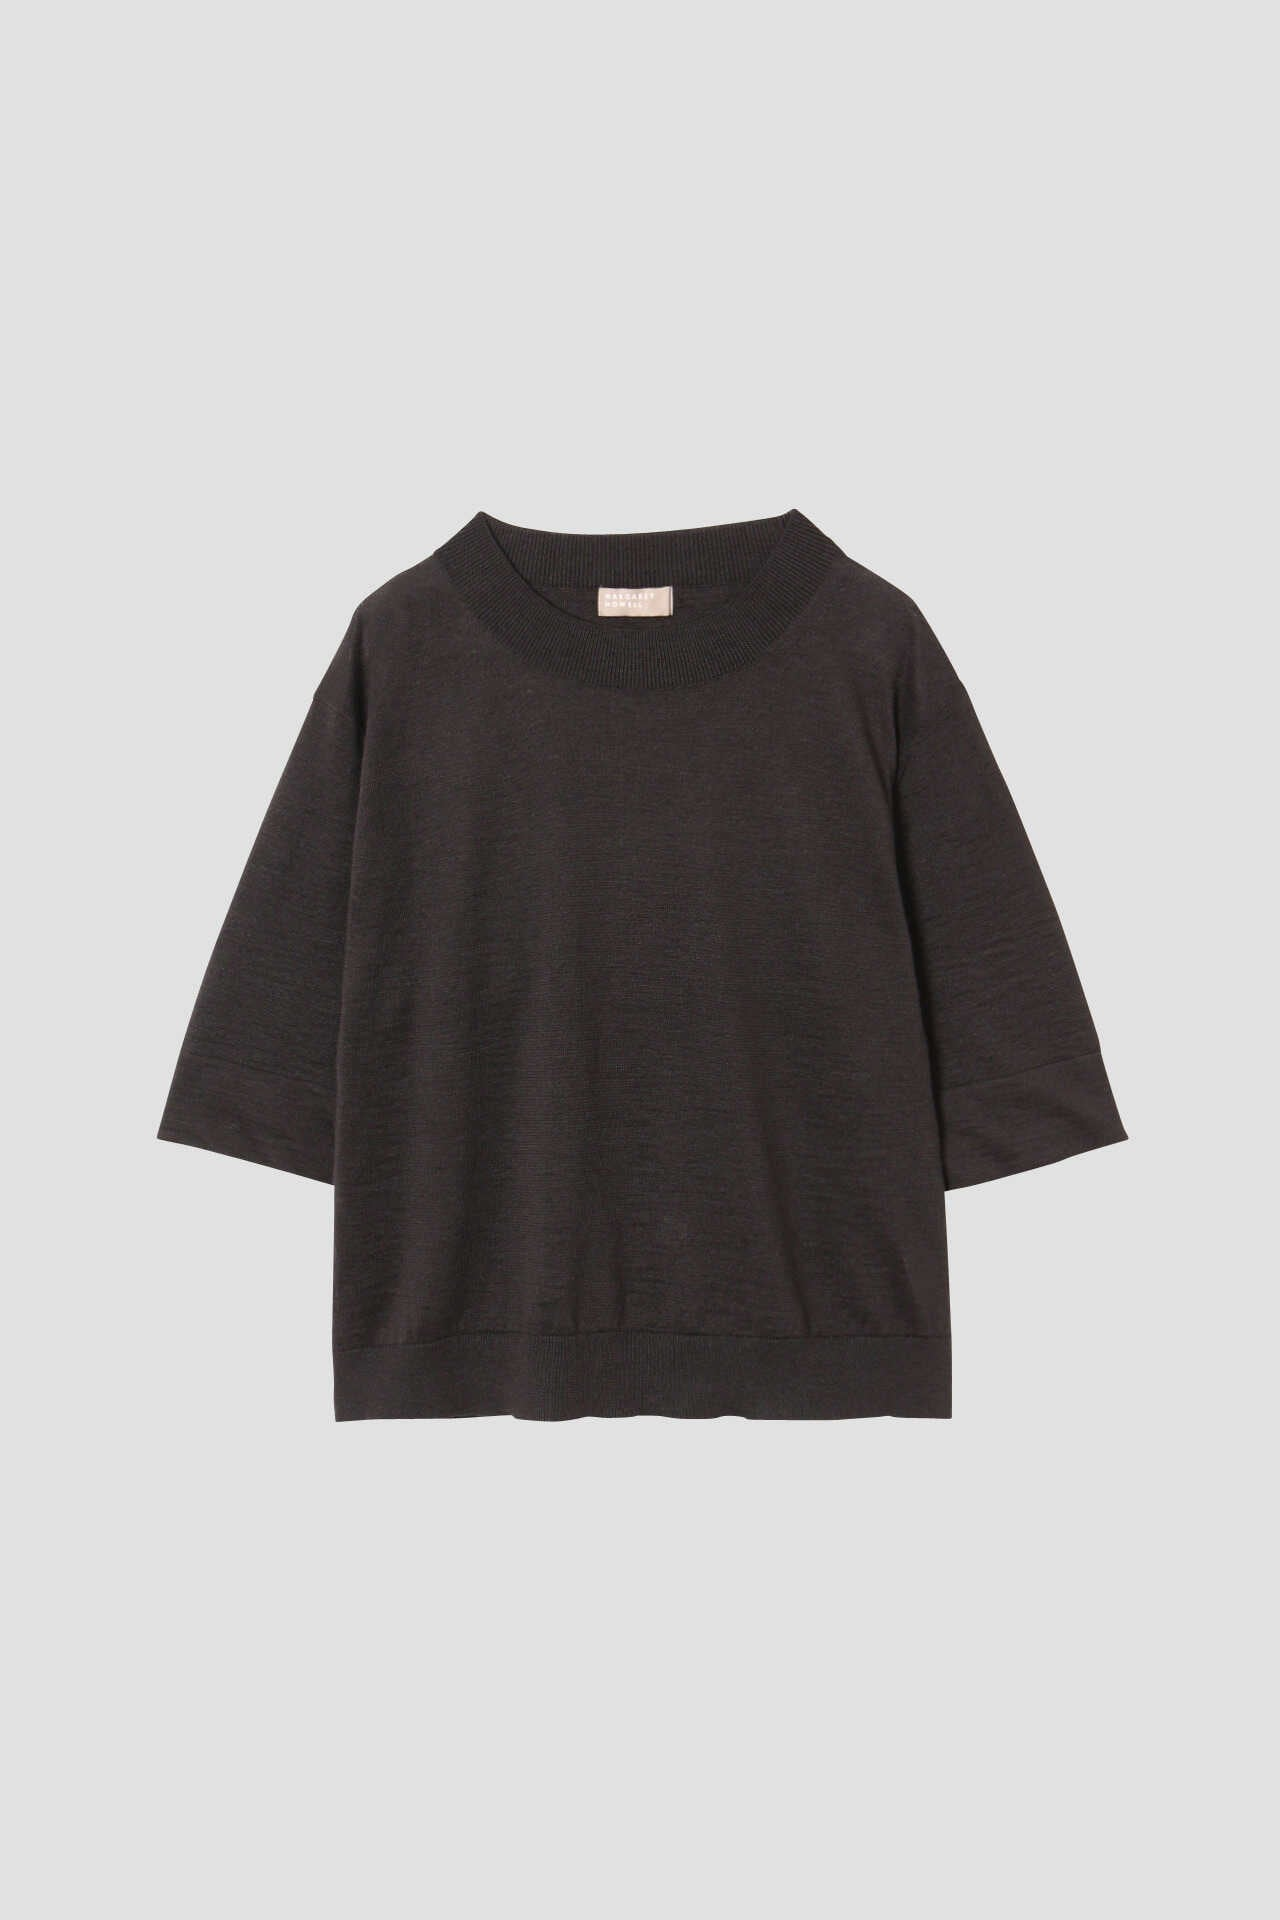 RAMIE COTTON DEEP RIB T SHIRT1